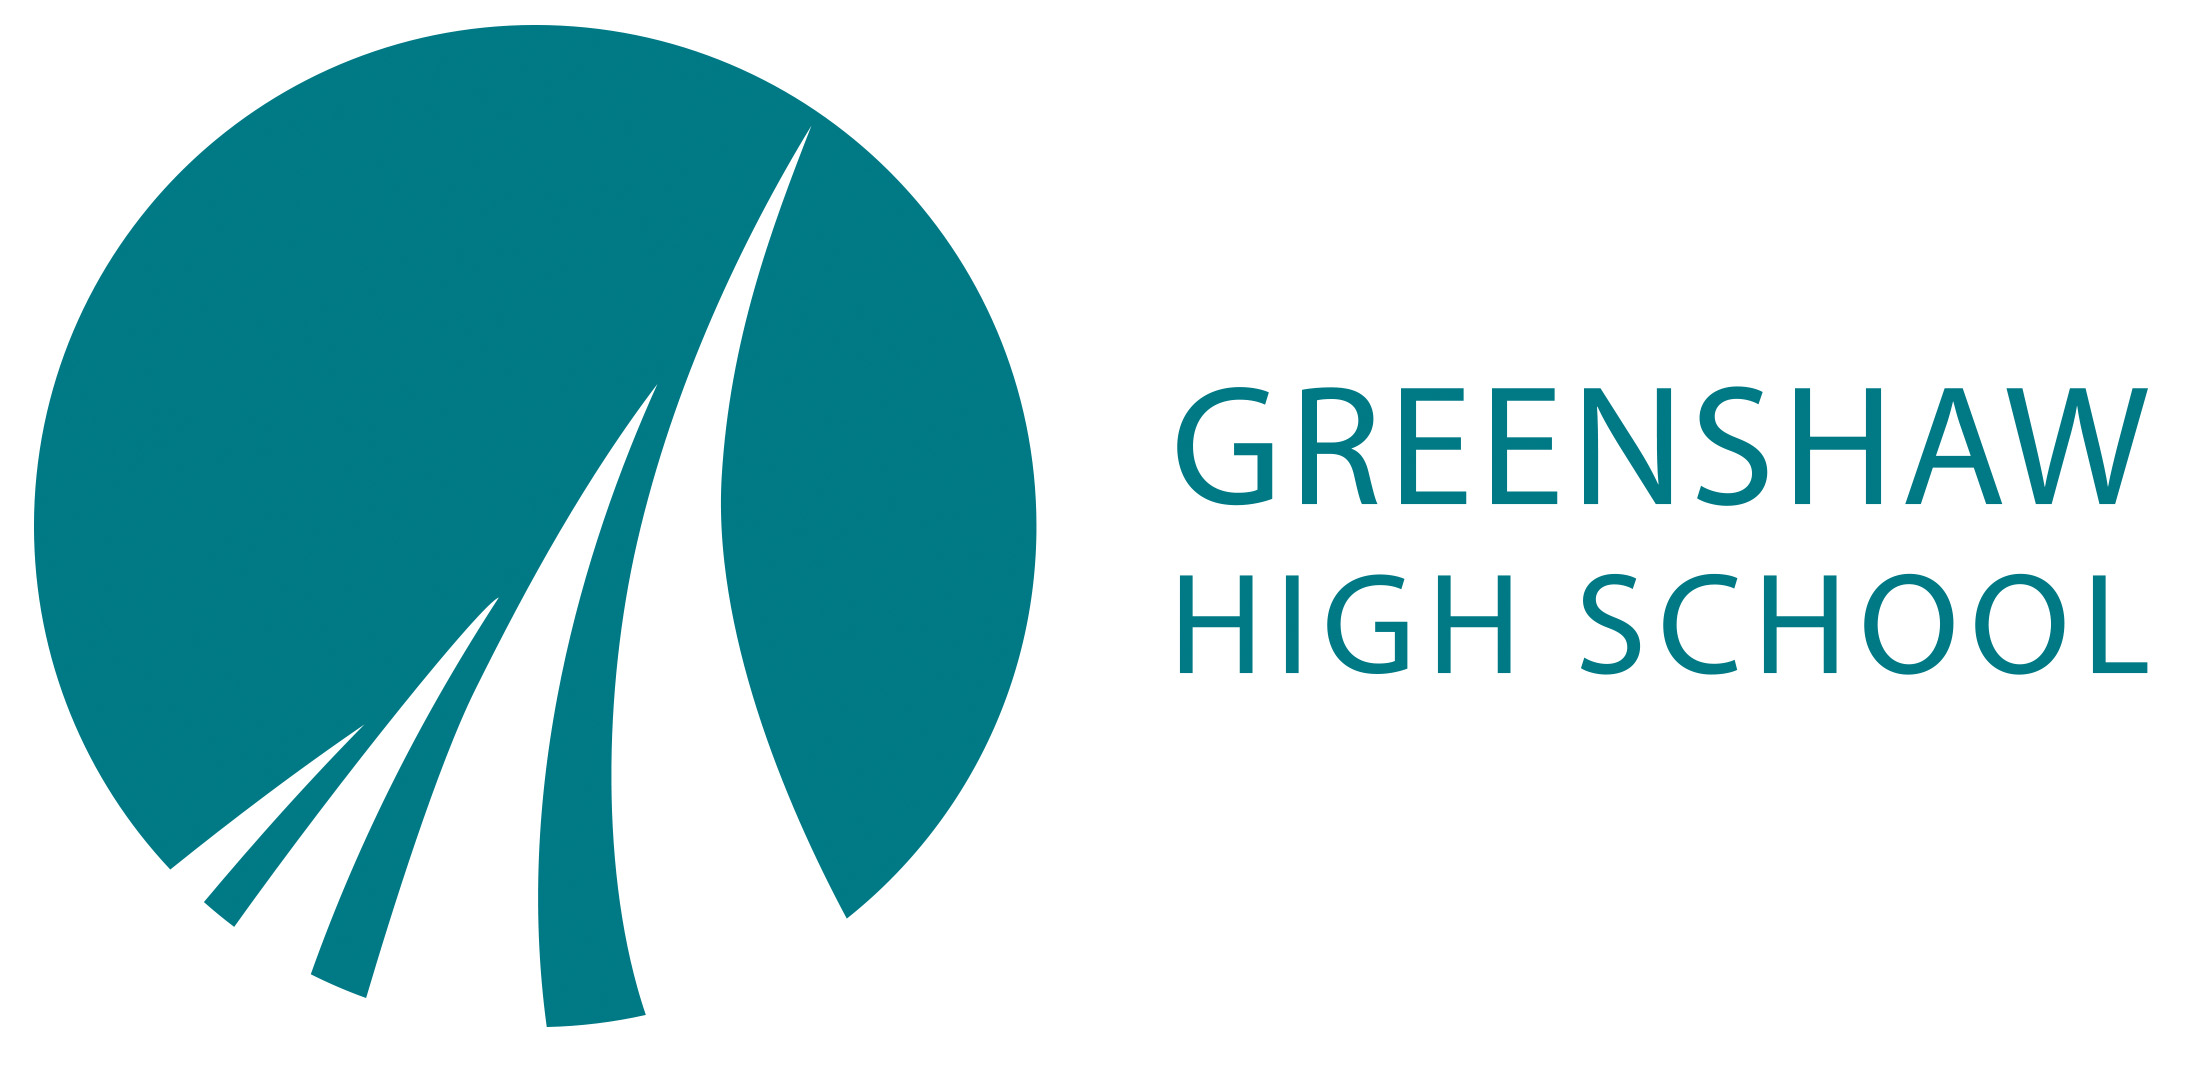 Greenshaw High School